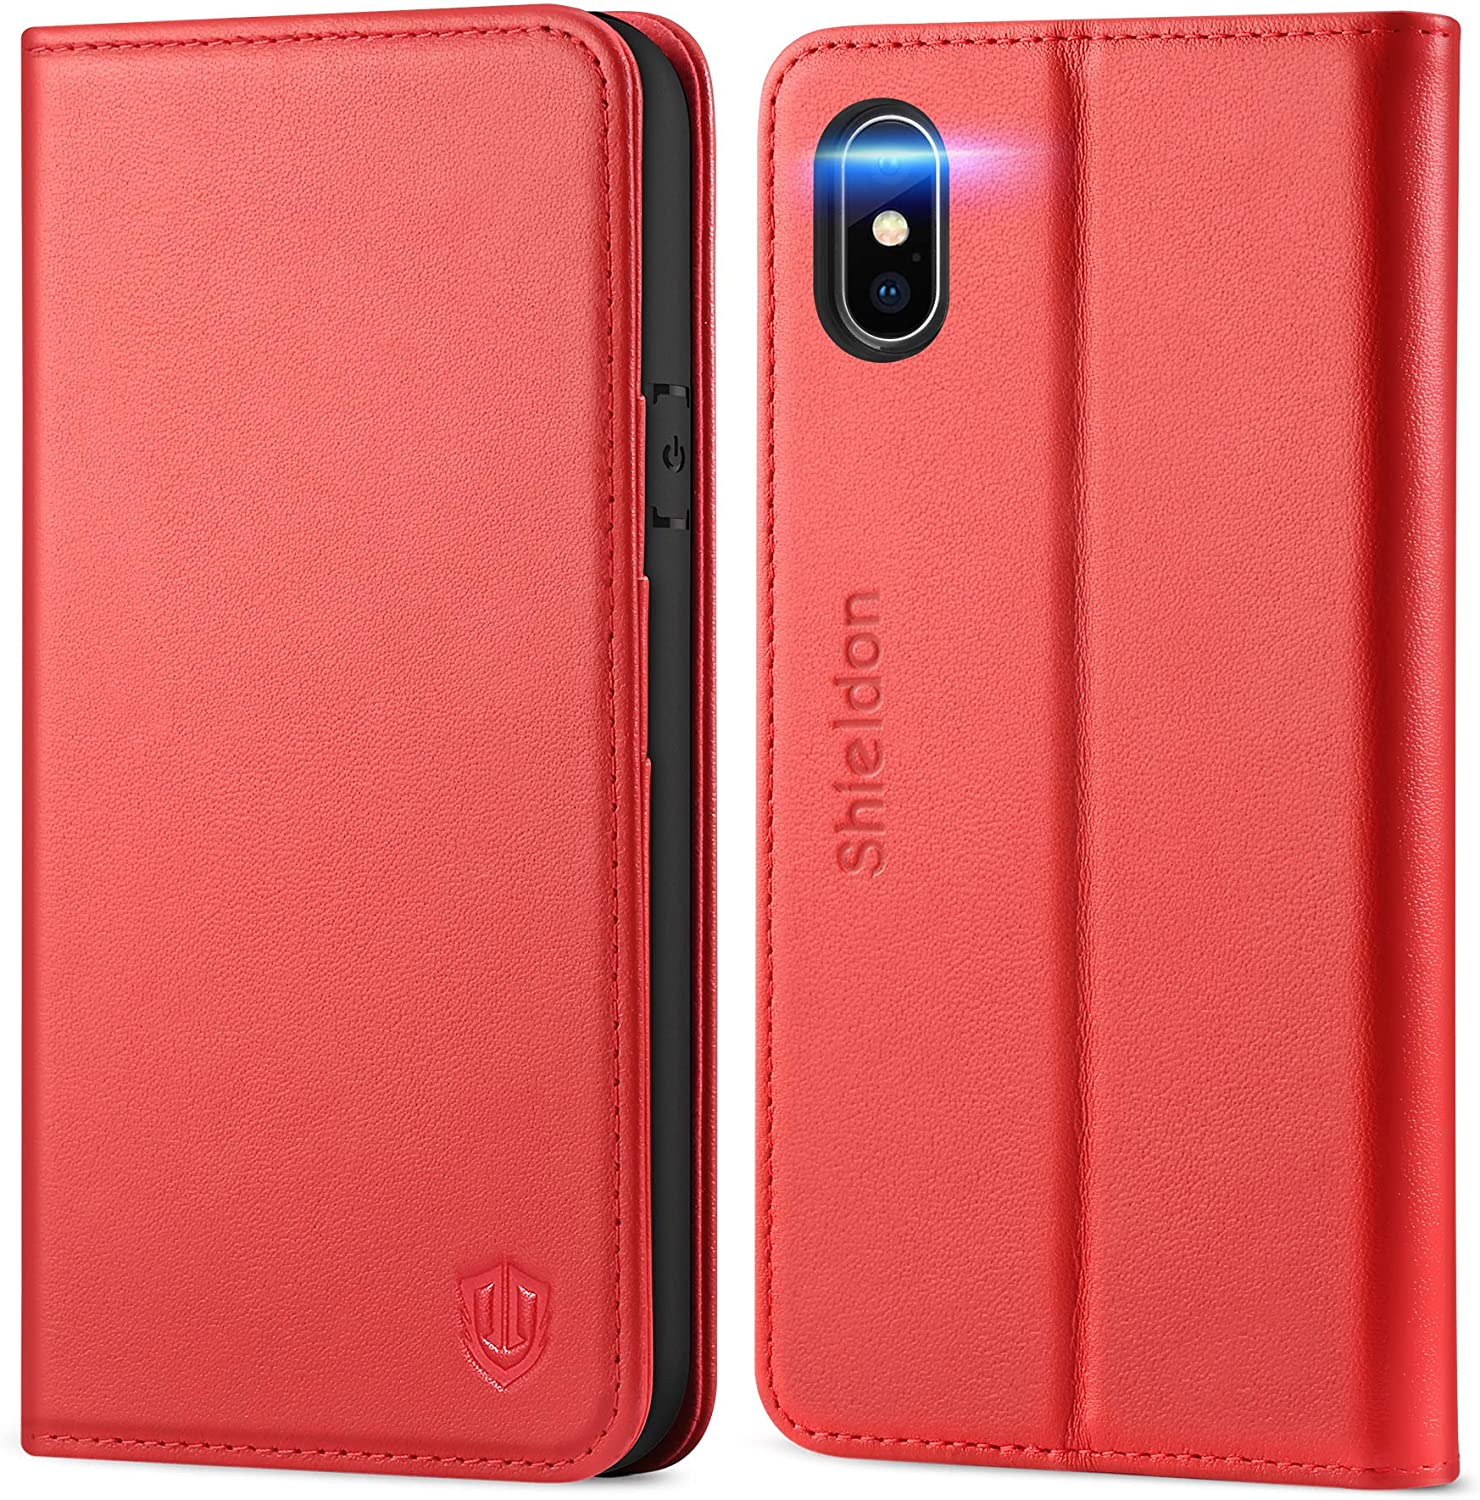 SHIELDON iPhone Xs Case, iPhone Xs Wallet Case Flip Book Cover Design with Auto Sleep Wake Kickstand Function and Credit Card Slot RFID Blocking Magnetic Closure Compatible with iPhone Xs - Red